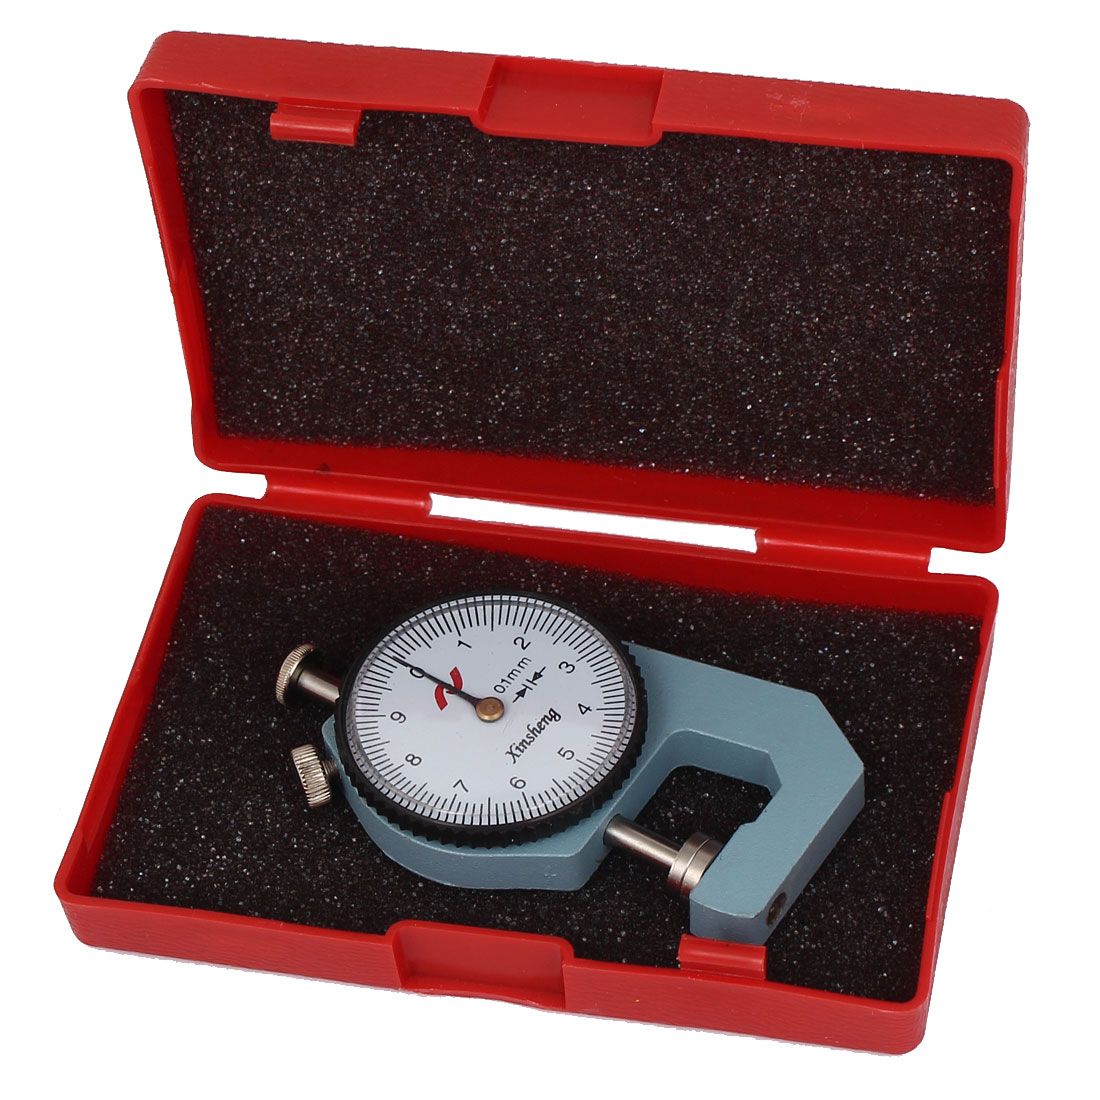 0-10mm x 0.1mm Dial Thickness Gauge Gage Pocket Measuring Tool Gray w Case by Unique-Bargains